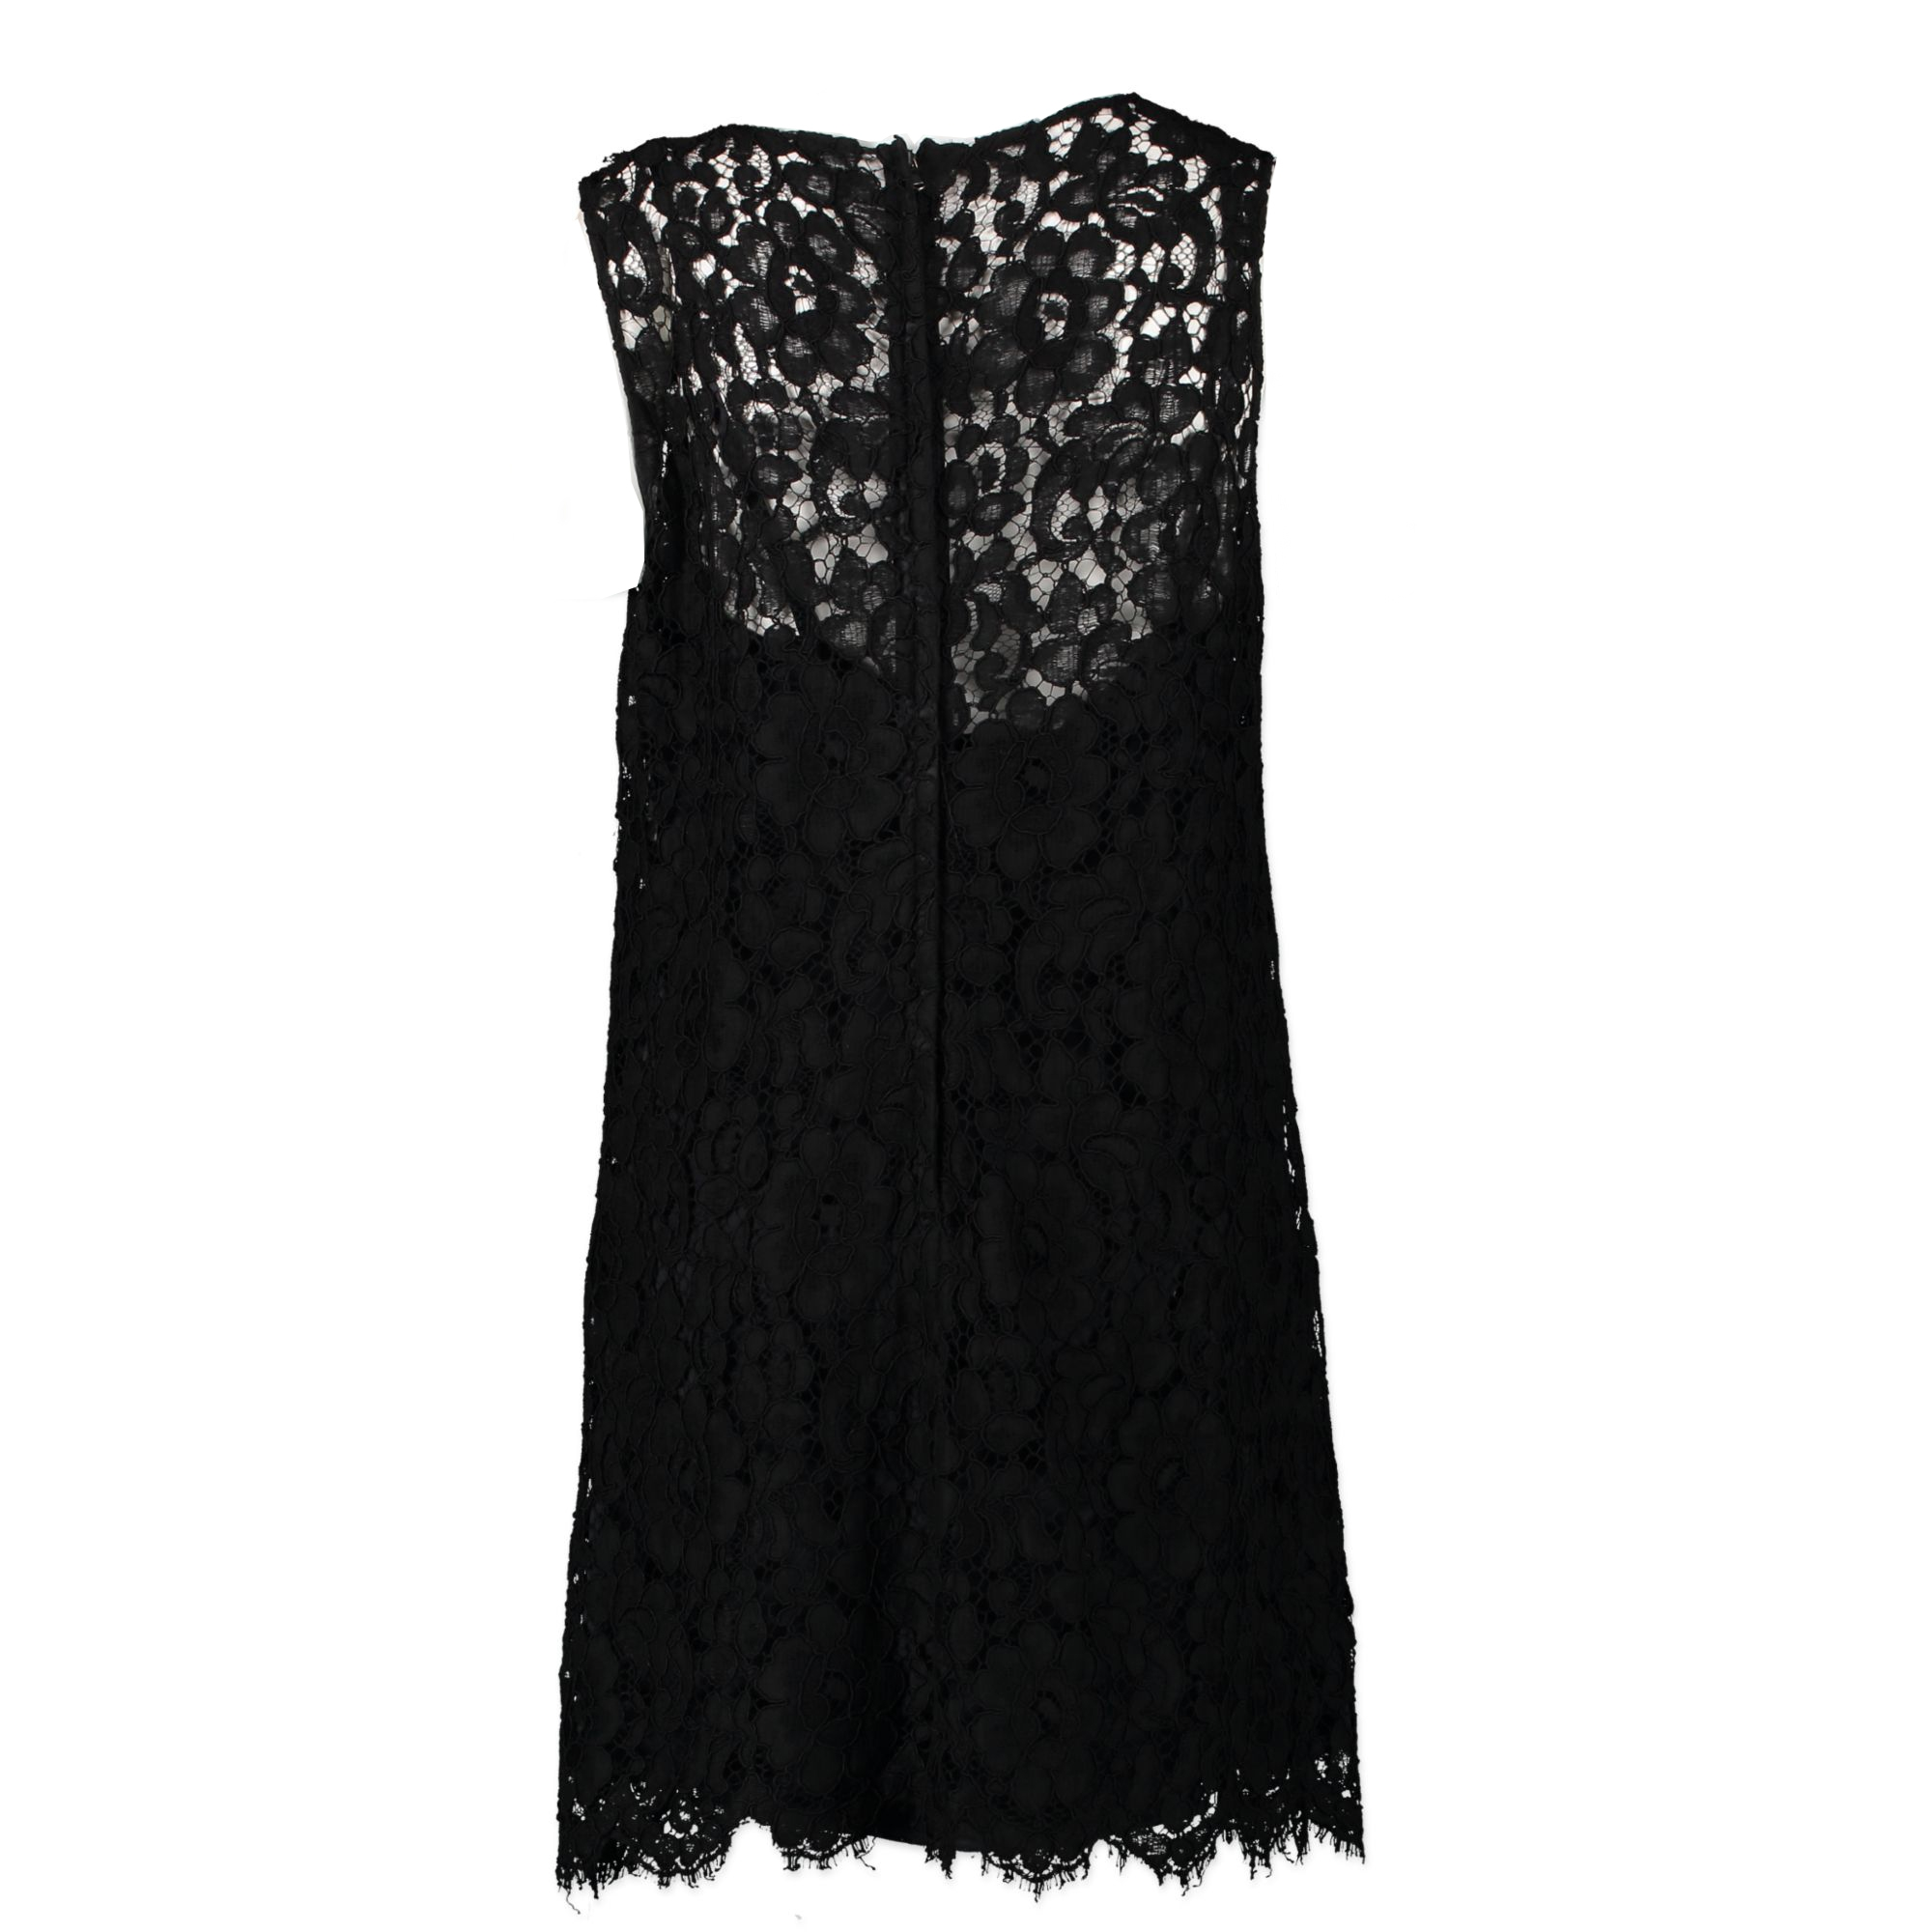 Authentic second-hand vintage Dolce & Gabbana Black Lace Dress at online webshop LabelLOV